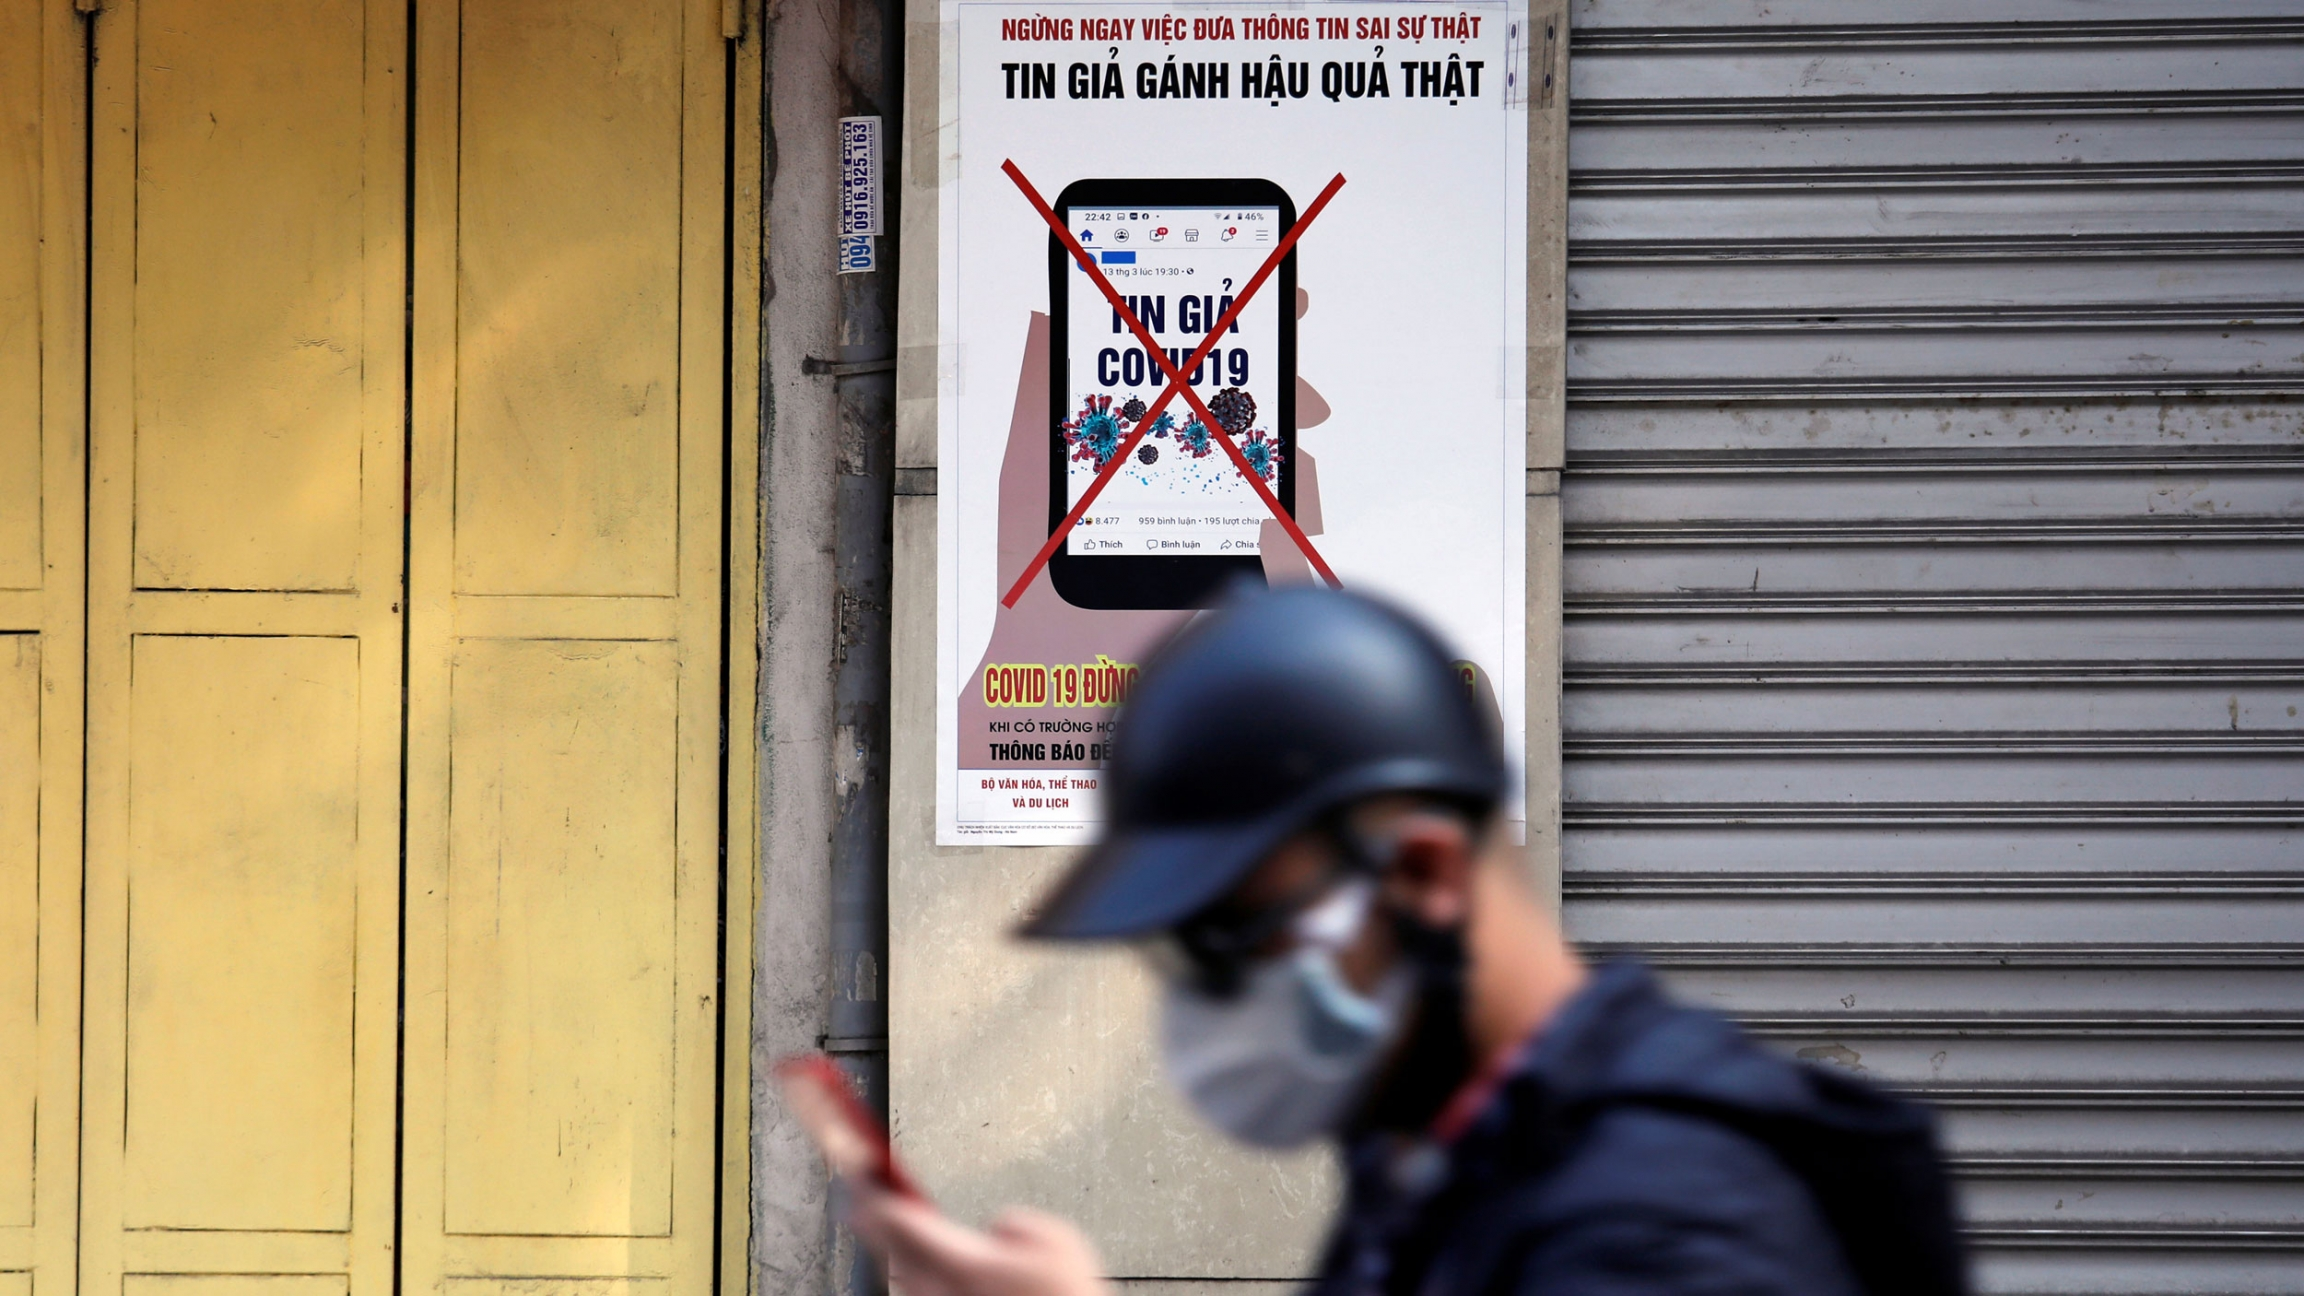 a man with a cellphone and a face mask walks in front of a sign in Vietnamese discouraging the spread of misinformation.